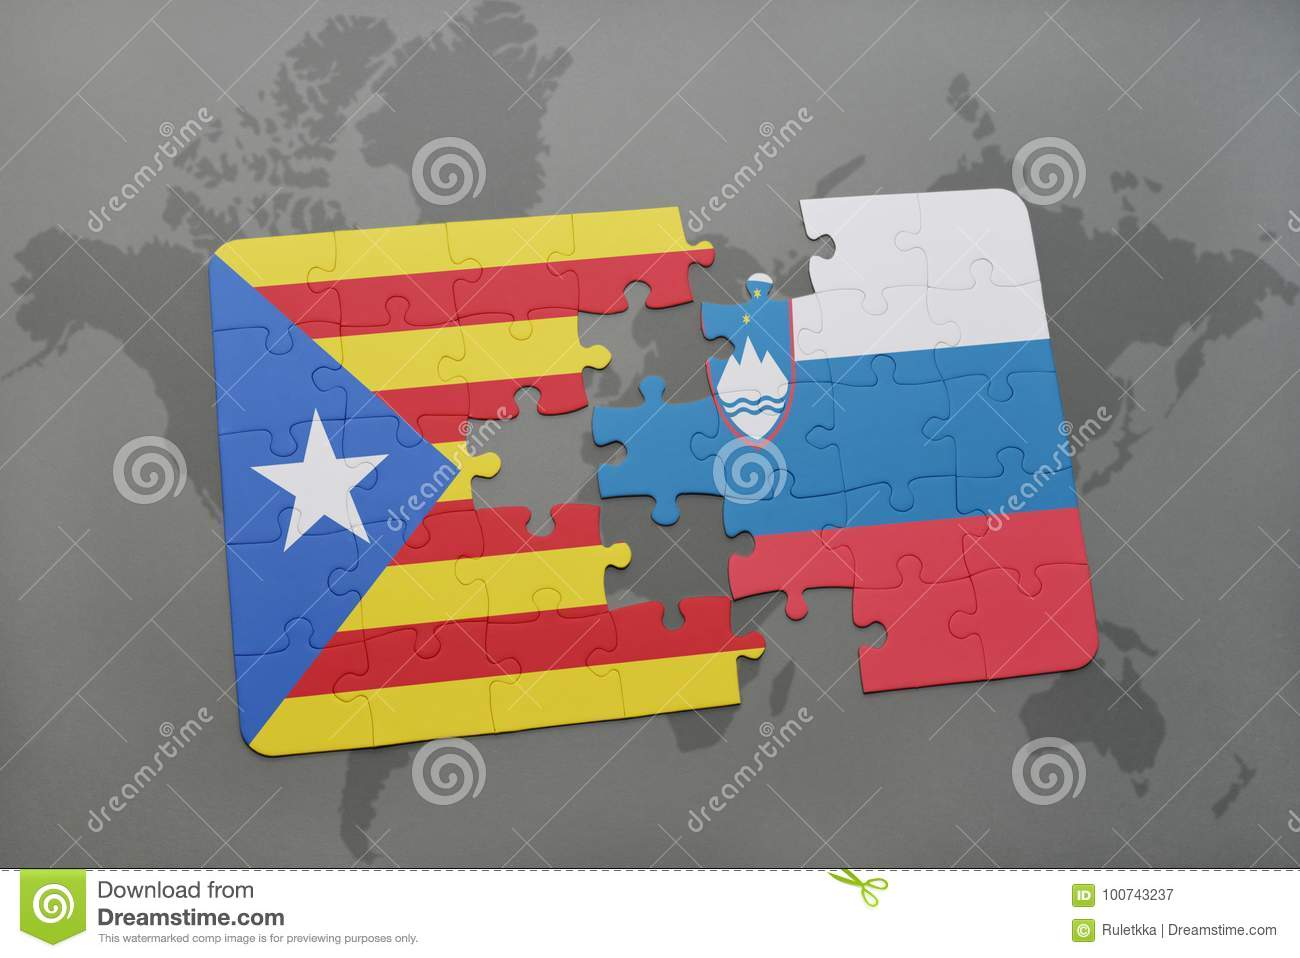 Puzzle with the national flag of catalonia and slovenia on a world download puzzle with the national flag of catalonia and slovenia on a world map background gumiabroncs Image collections